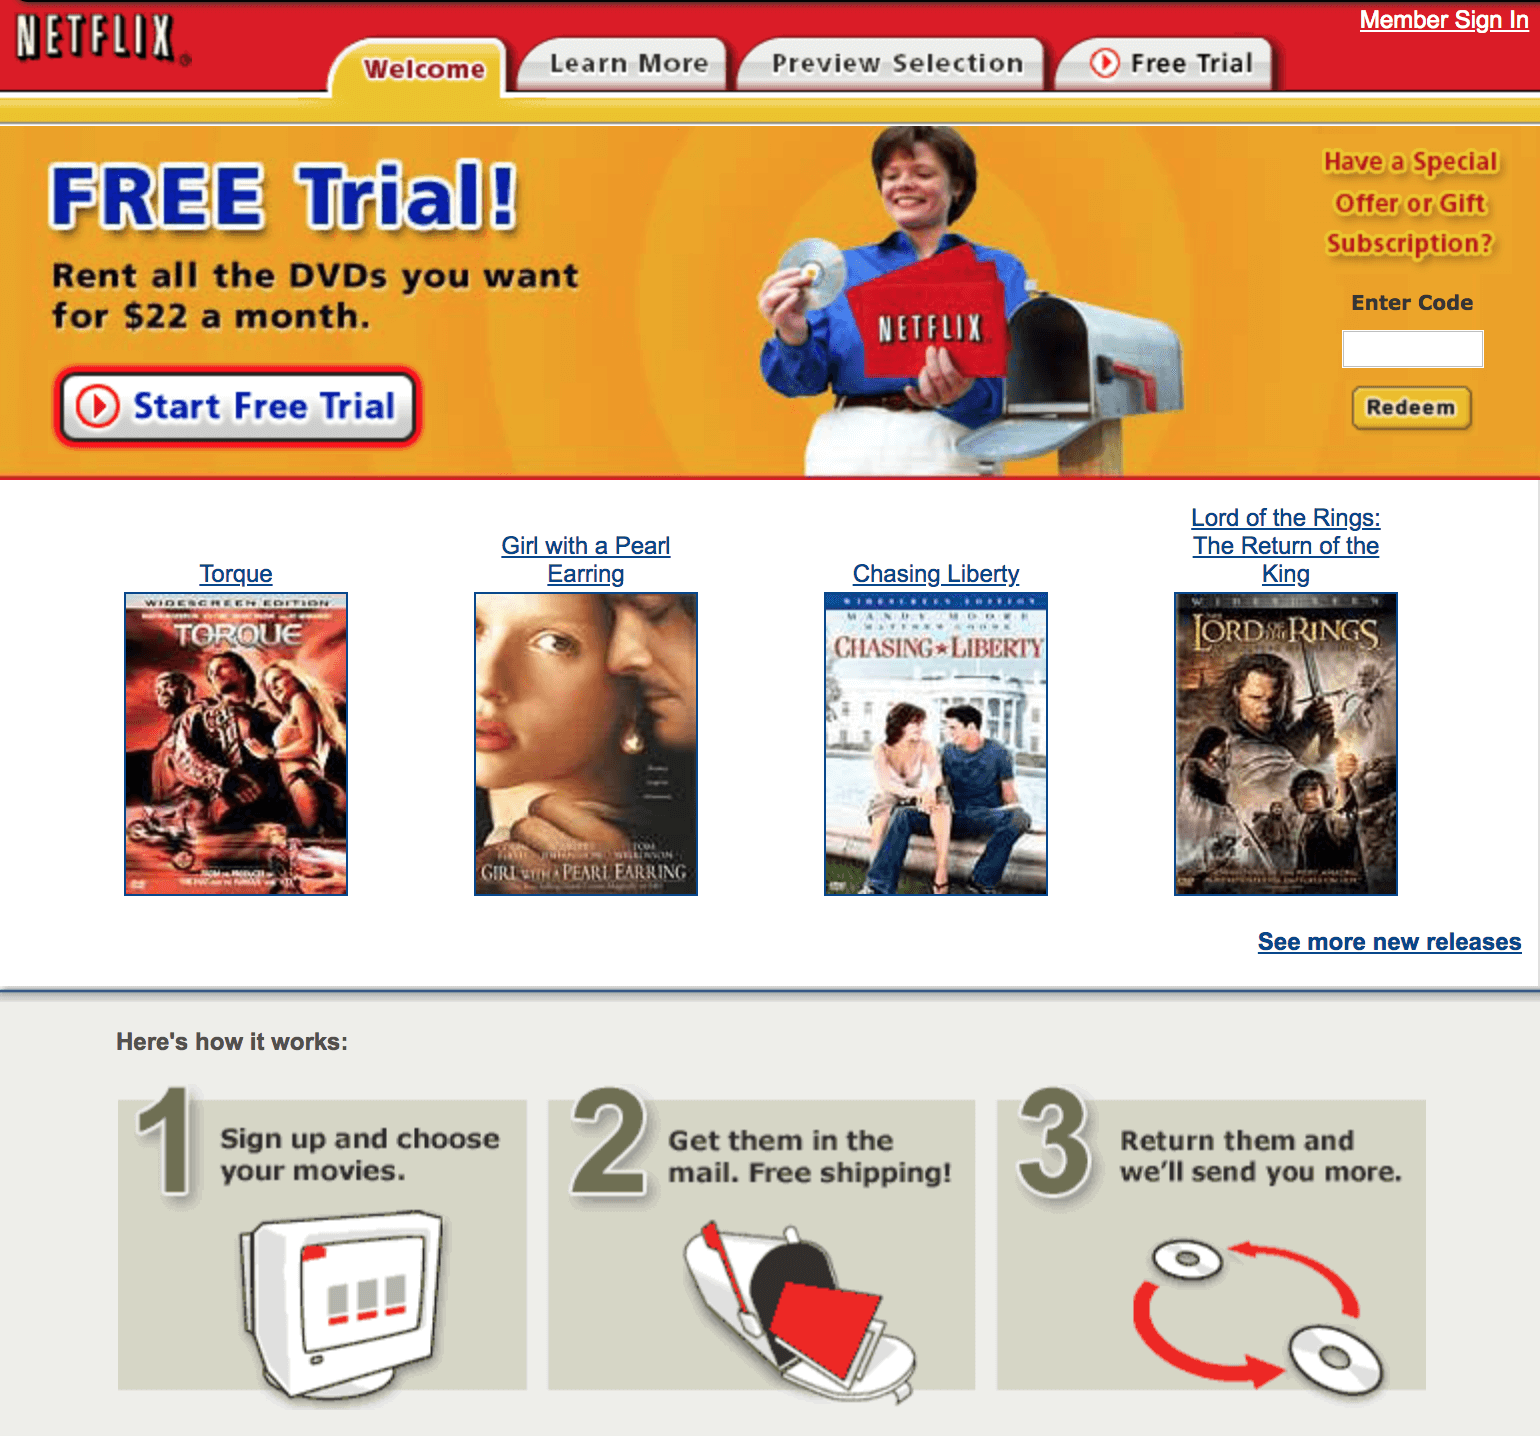 Netflix is a great example of penetration pricing strategy